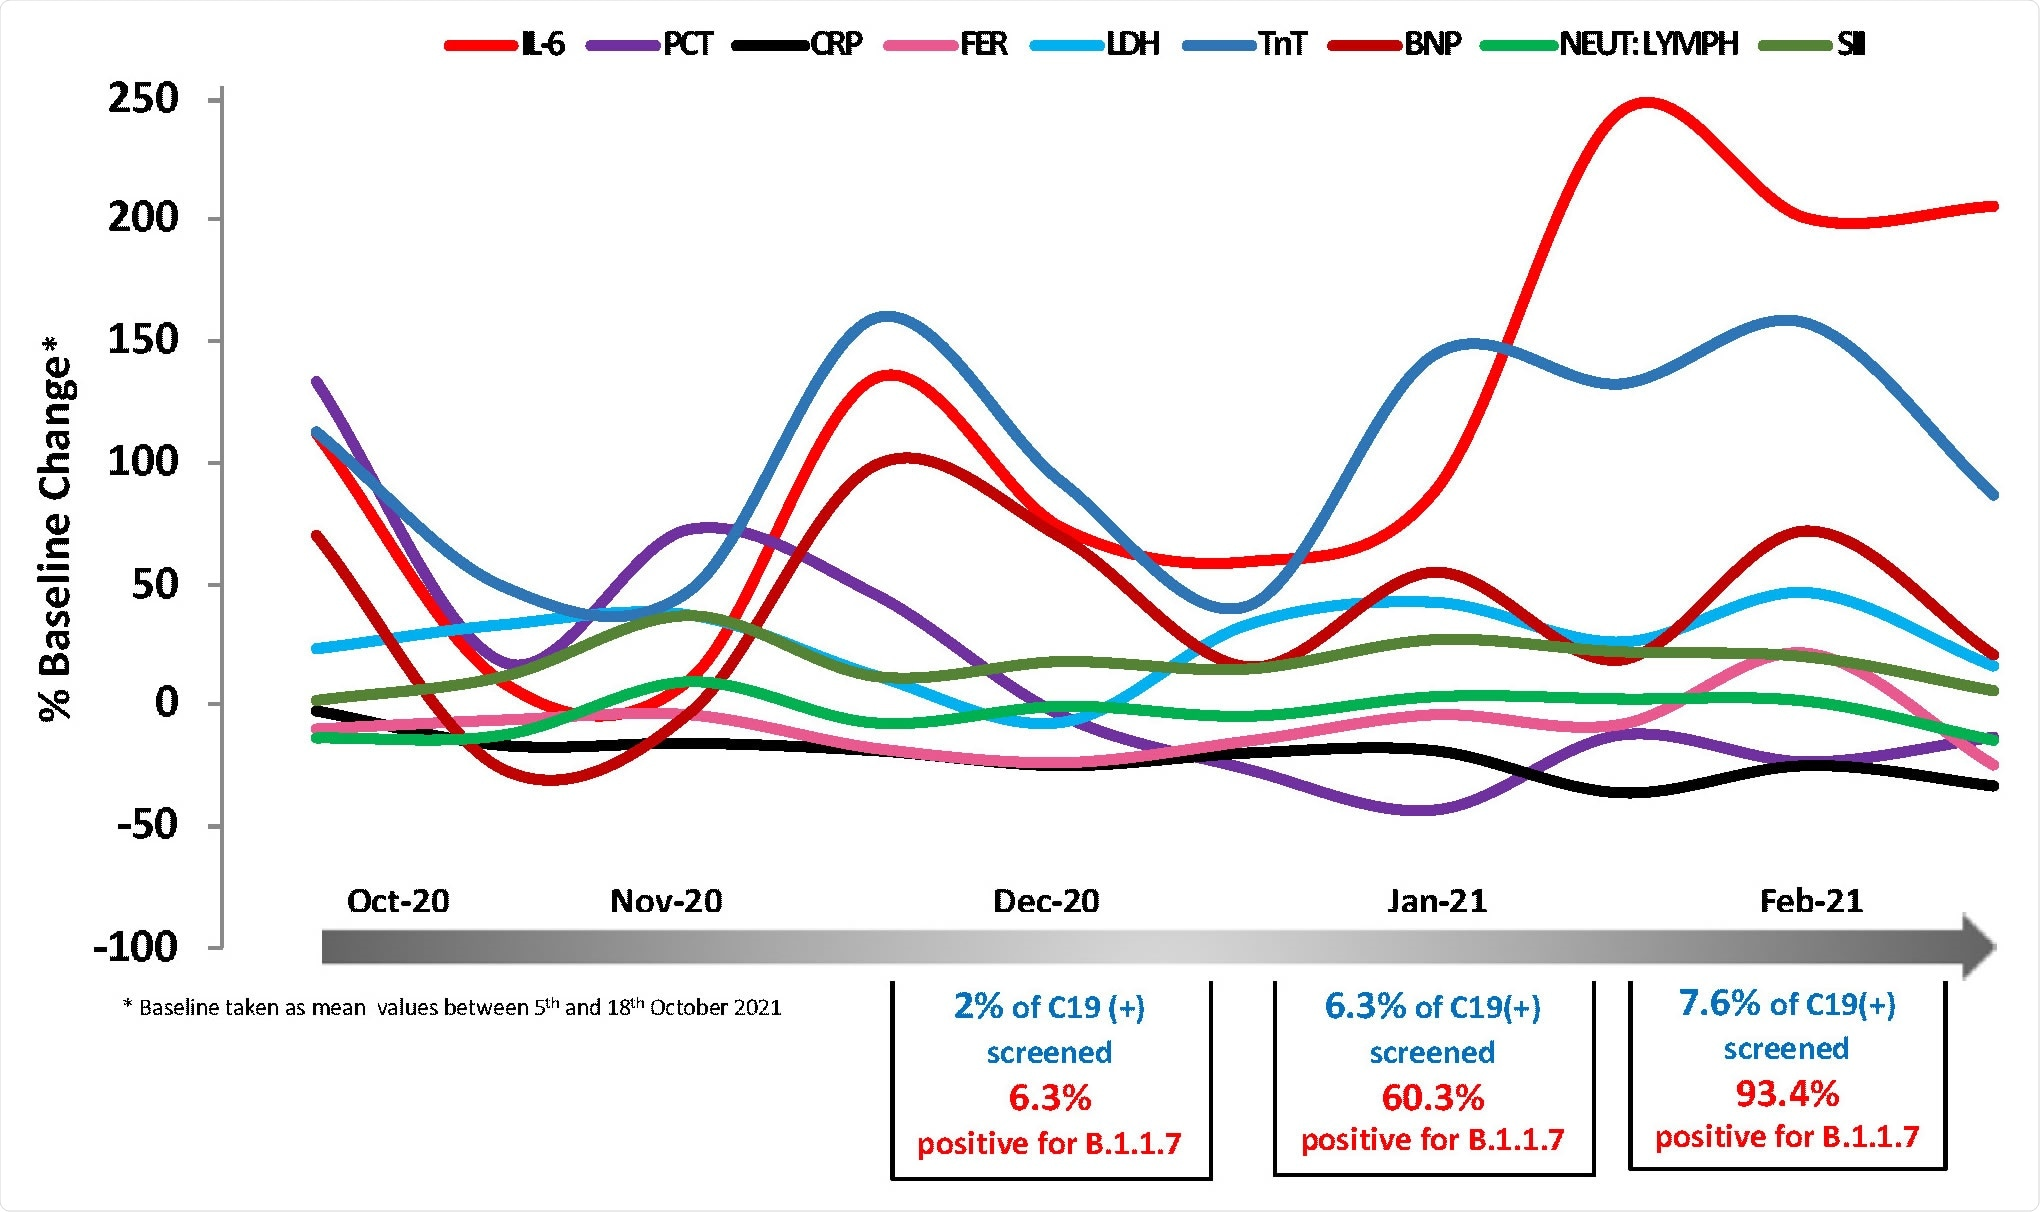 Temporal changes in blood COVID-19 biomarkers during the period 5/10/2020- 7/3/2021. Mean values expressed as % change from baseline (mean value of 5t -18th October 2020) are plotted as a function of time using measurements at regular time intervals (twice a month). Biomarkers of interest were measured at the routine Biochemistry laboratory of UHCW NHS Trust using CE-marked Elecsys kits from Roche Diagnostics. In total 1,112 data points were analysed.